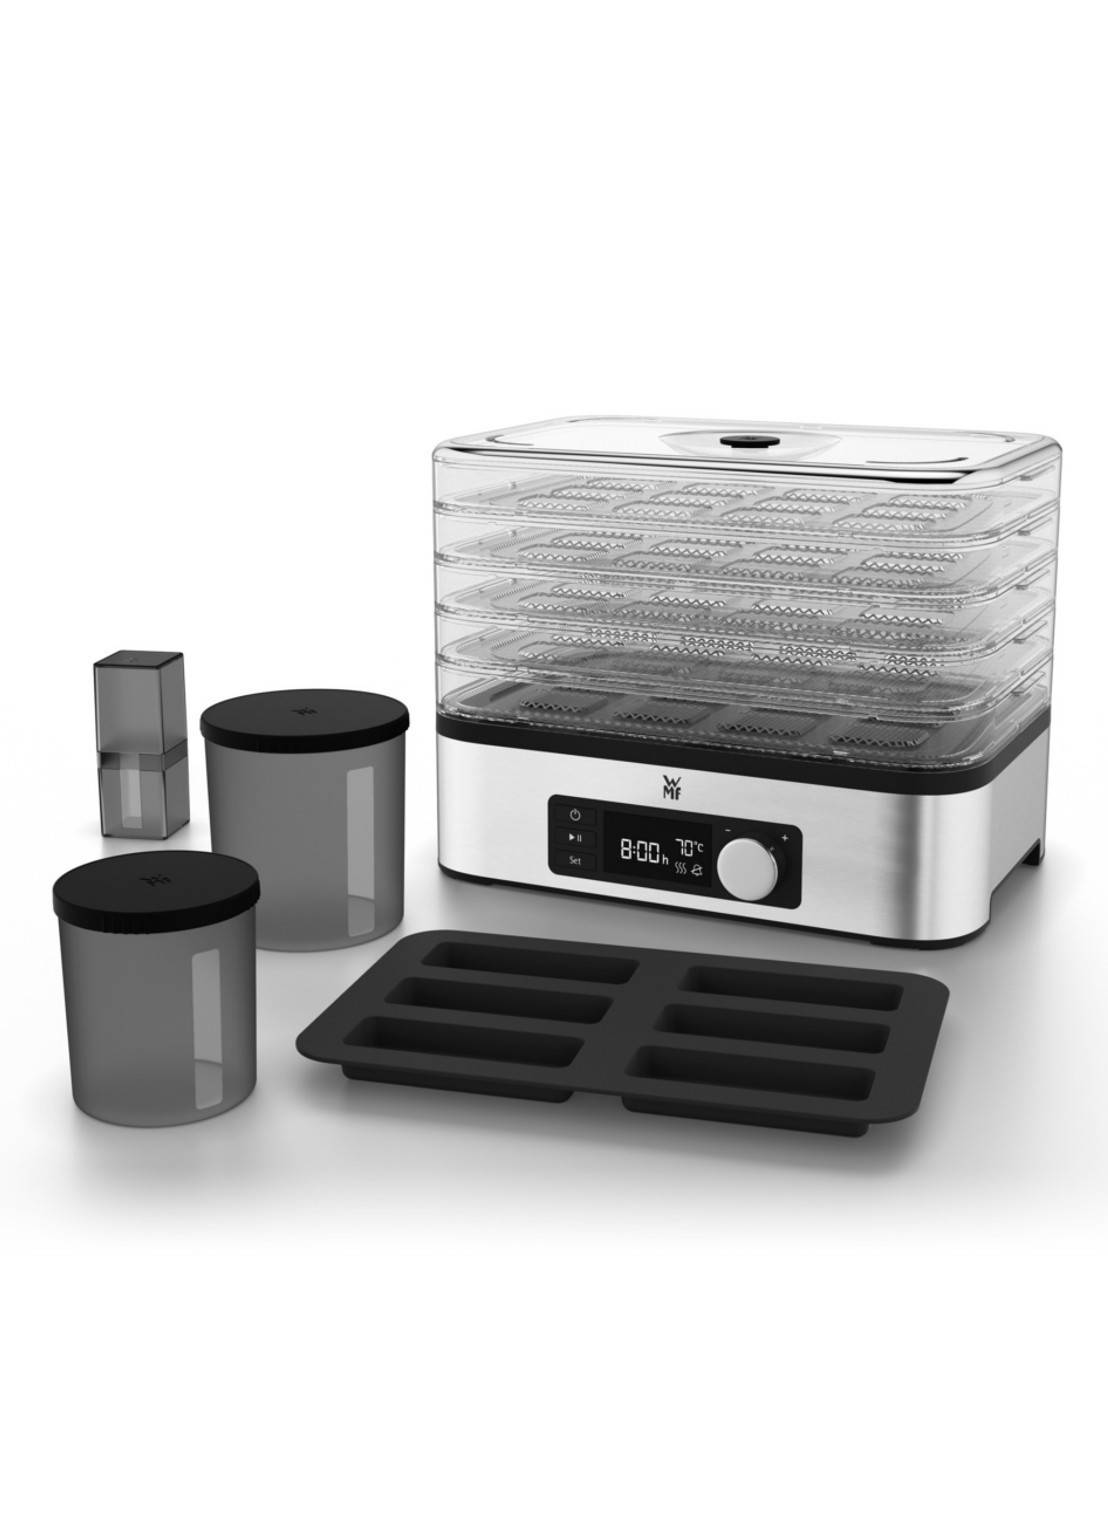 wmf Four de séchage KITCHENminis snack-to-go - Argent